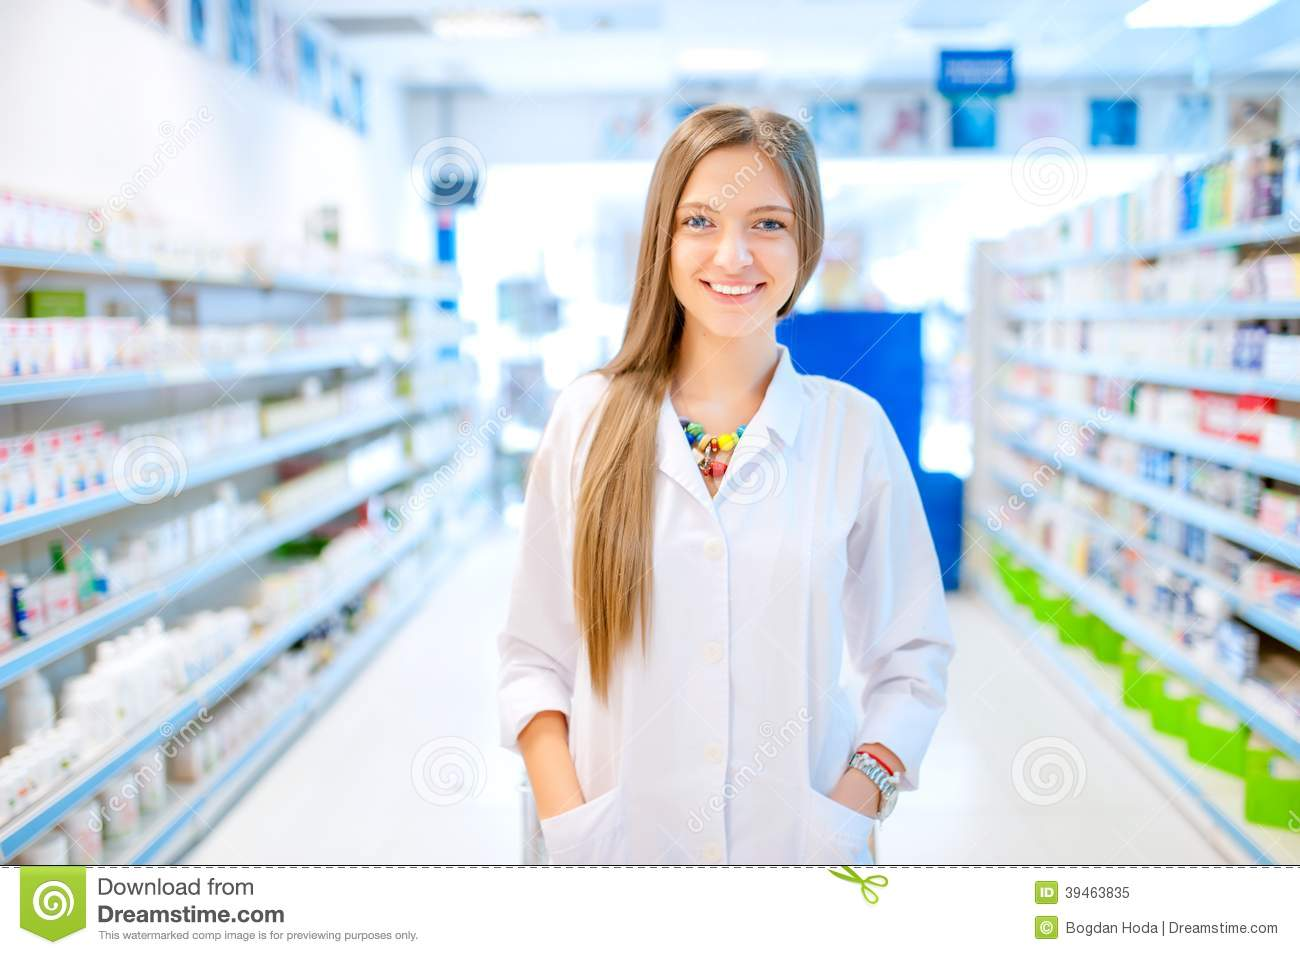 Women in pharmacy